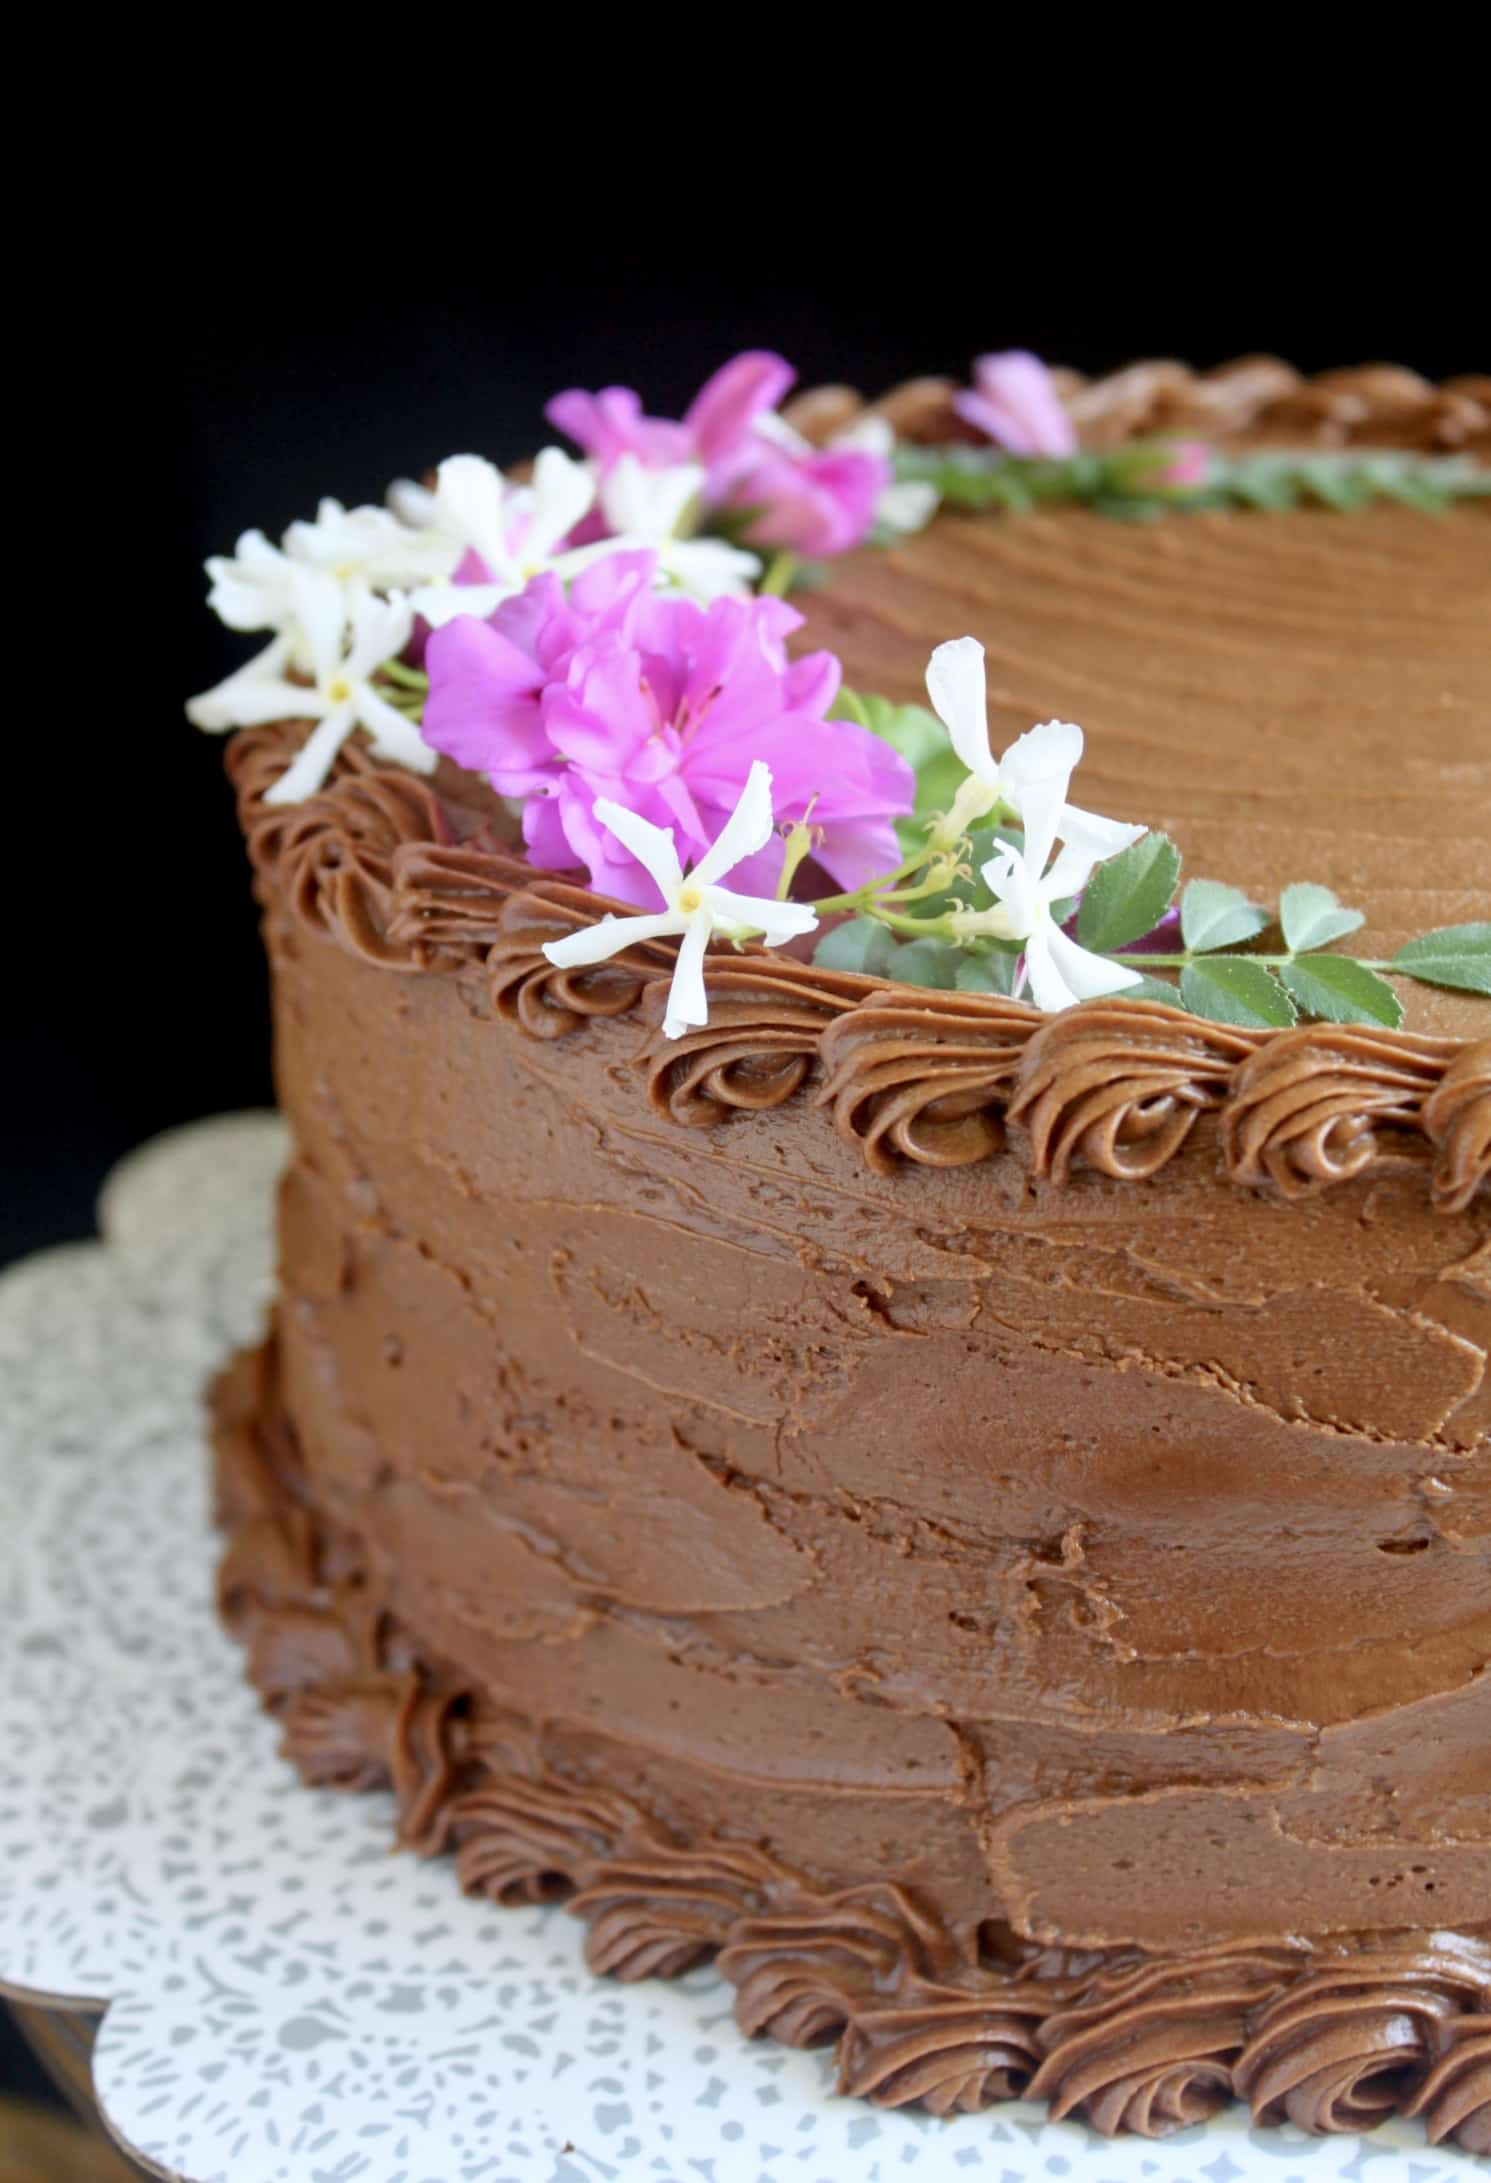 Moist Chocolate Cake recipe with edible flowers